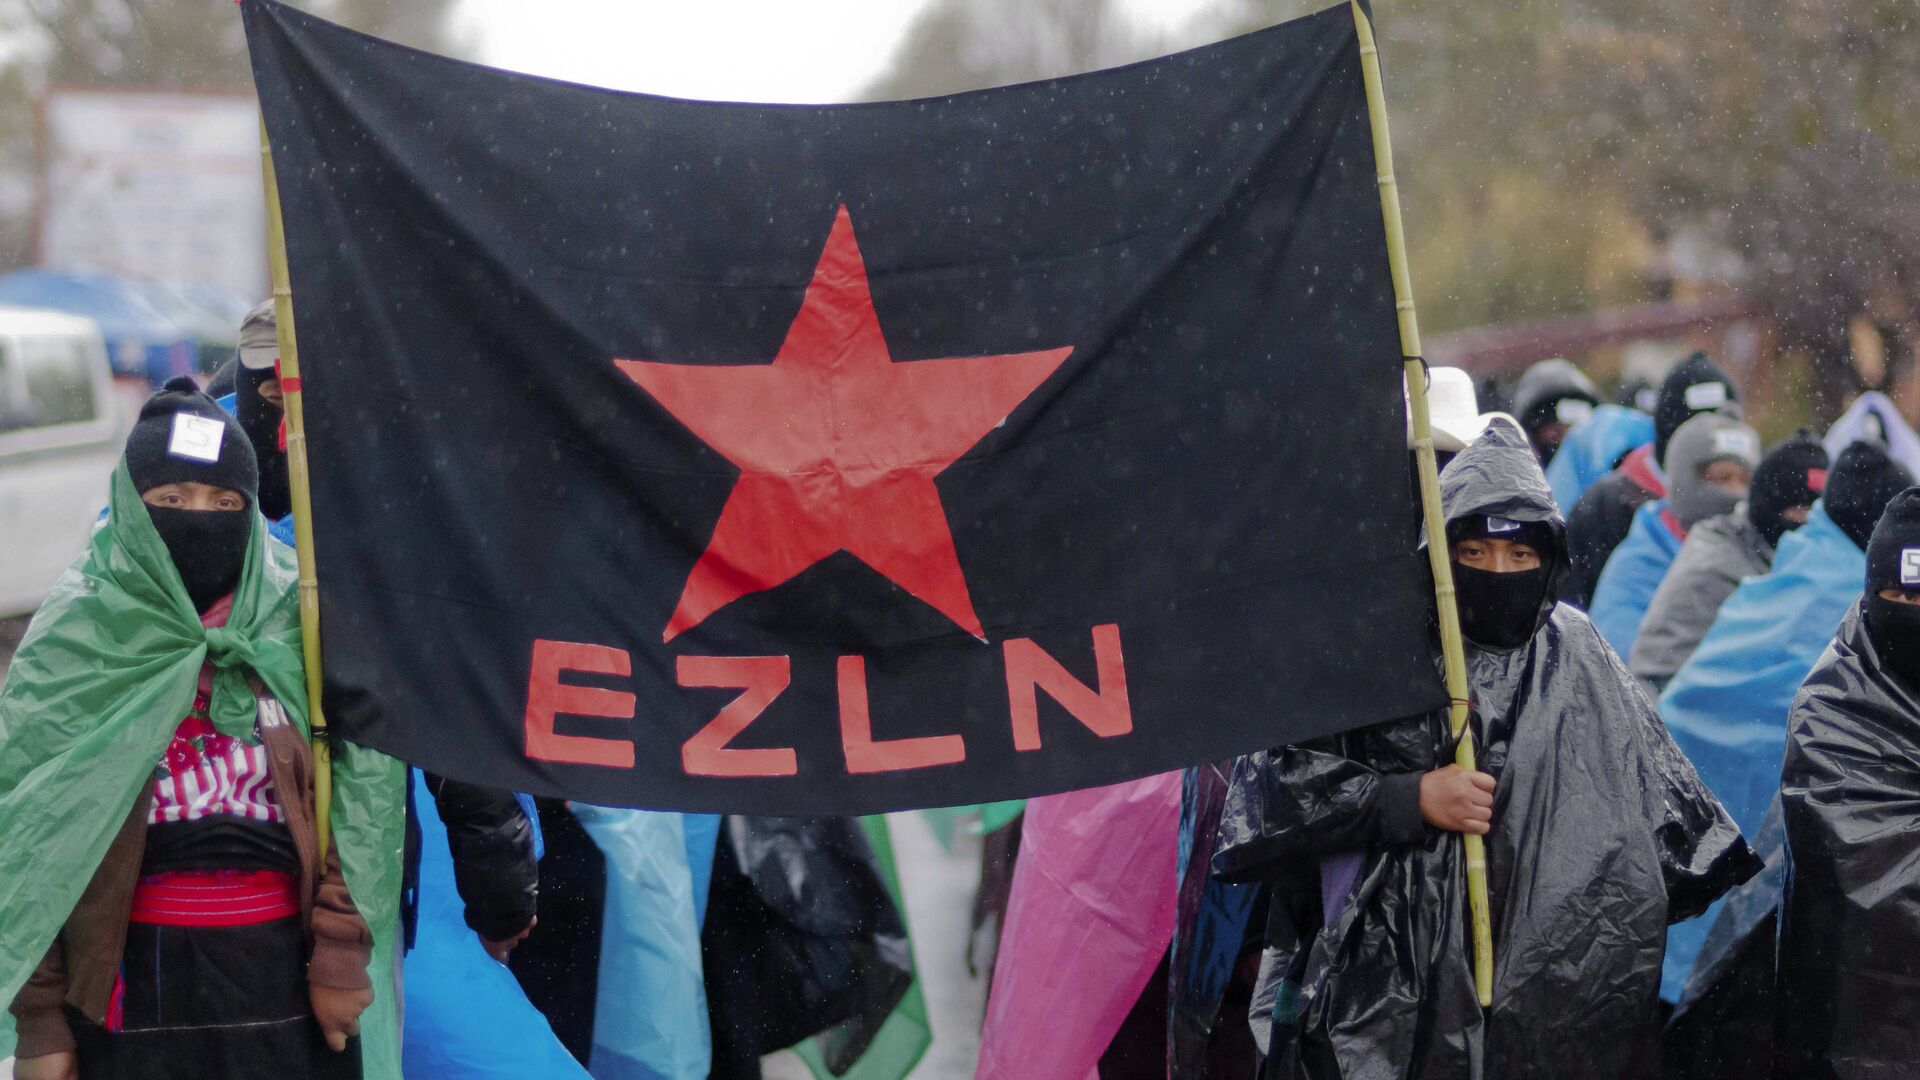 Mayan indigenous people with their faces covered, hold a flag of the Zapatista Army of National Liberation (EZLN) during a march in San Critobal de las Casa, Chiapas state, Mexico on December 21, 2012, - Sputnik Mundo, 1920, 21.09.2021